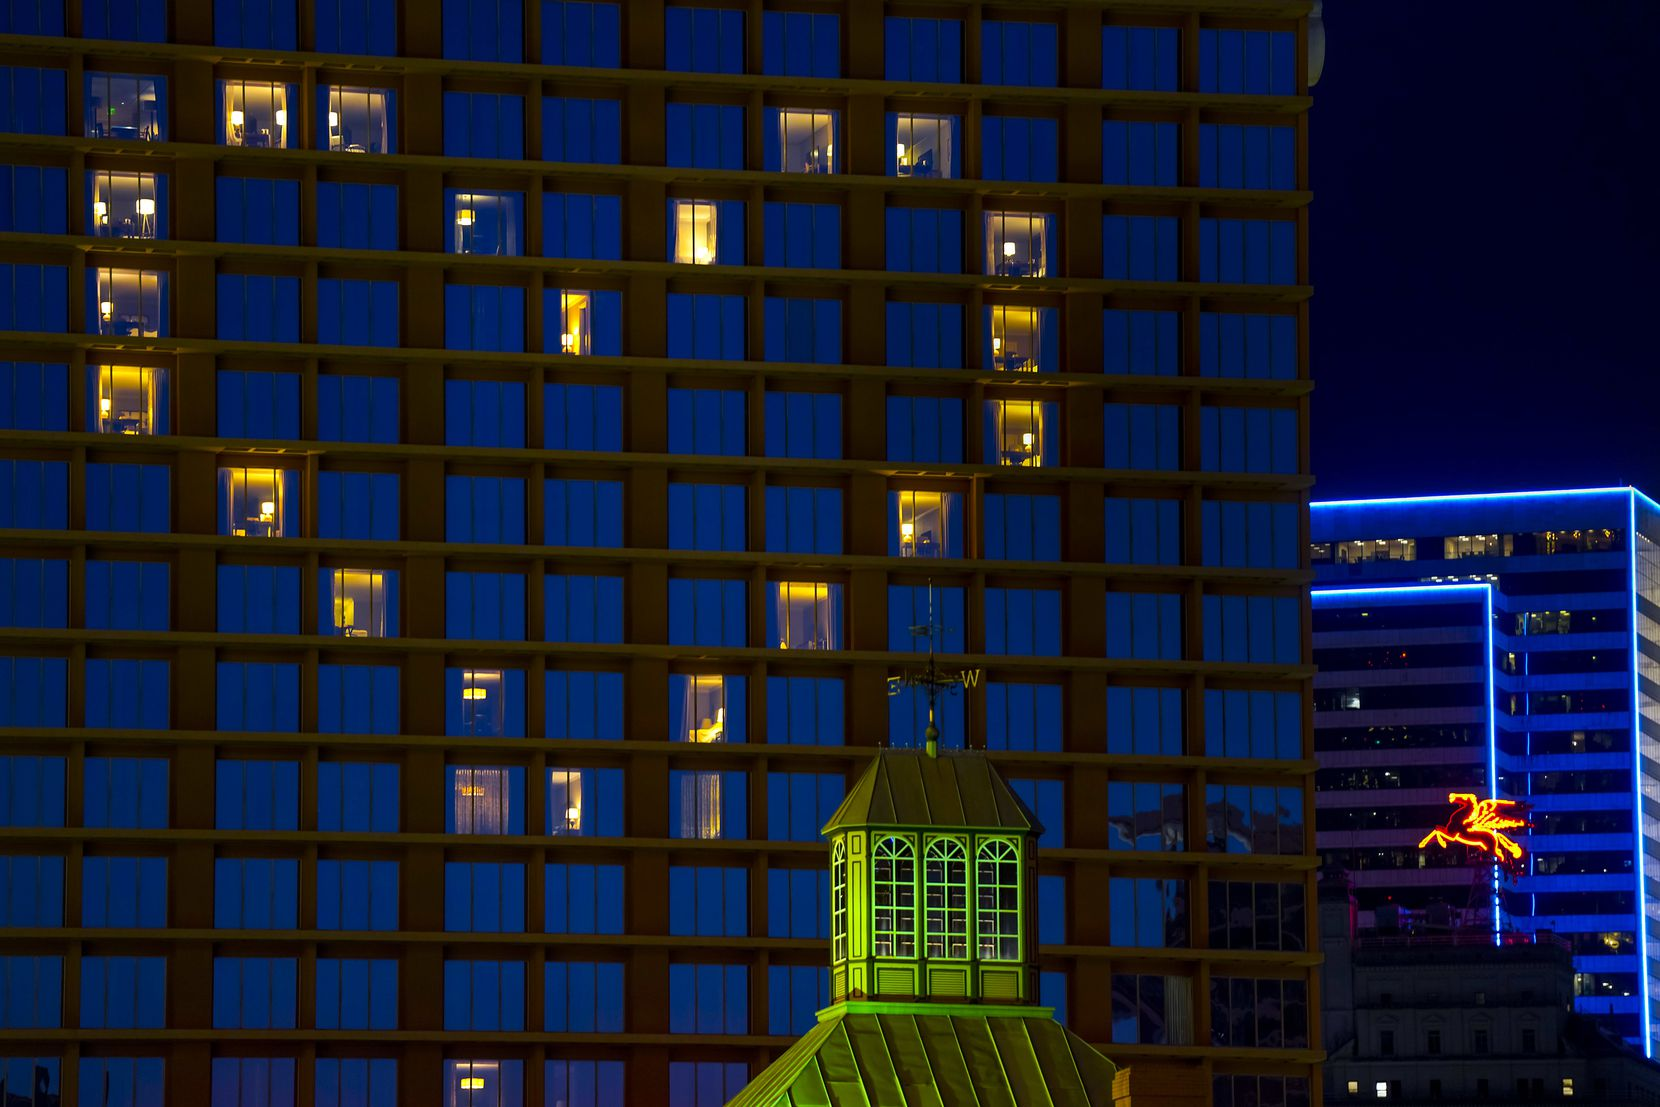 The lights from empty rooms at the Fairmont Dallas hotel formed the shape of a heart on March 28, 2020. Most of the people living in Dallas-Fort Worth were under strict rules to stay home except to buy groceries or pick up medicine in response to the  COVID-19 pandemic.